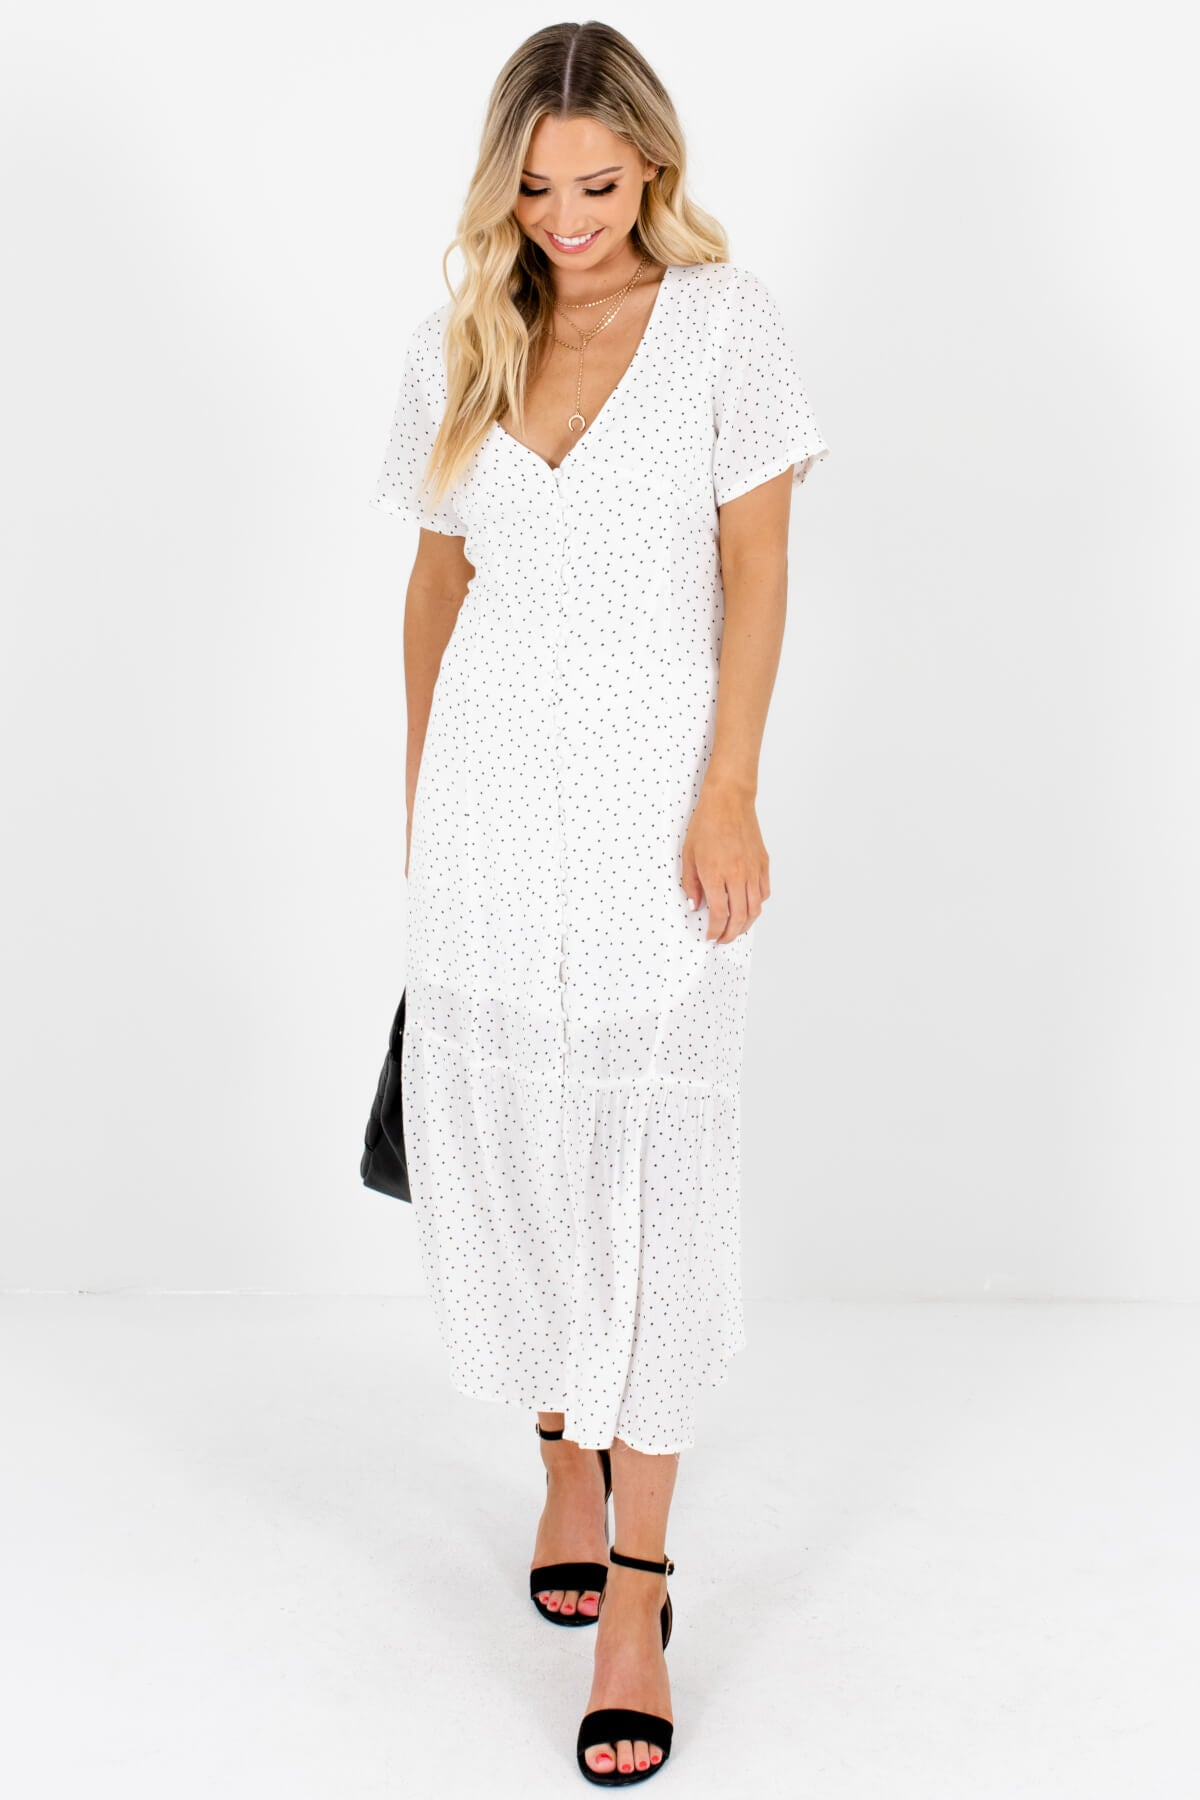 White Black Polka Dot Button-Up Maxi Dresses Affordable Online Boutique